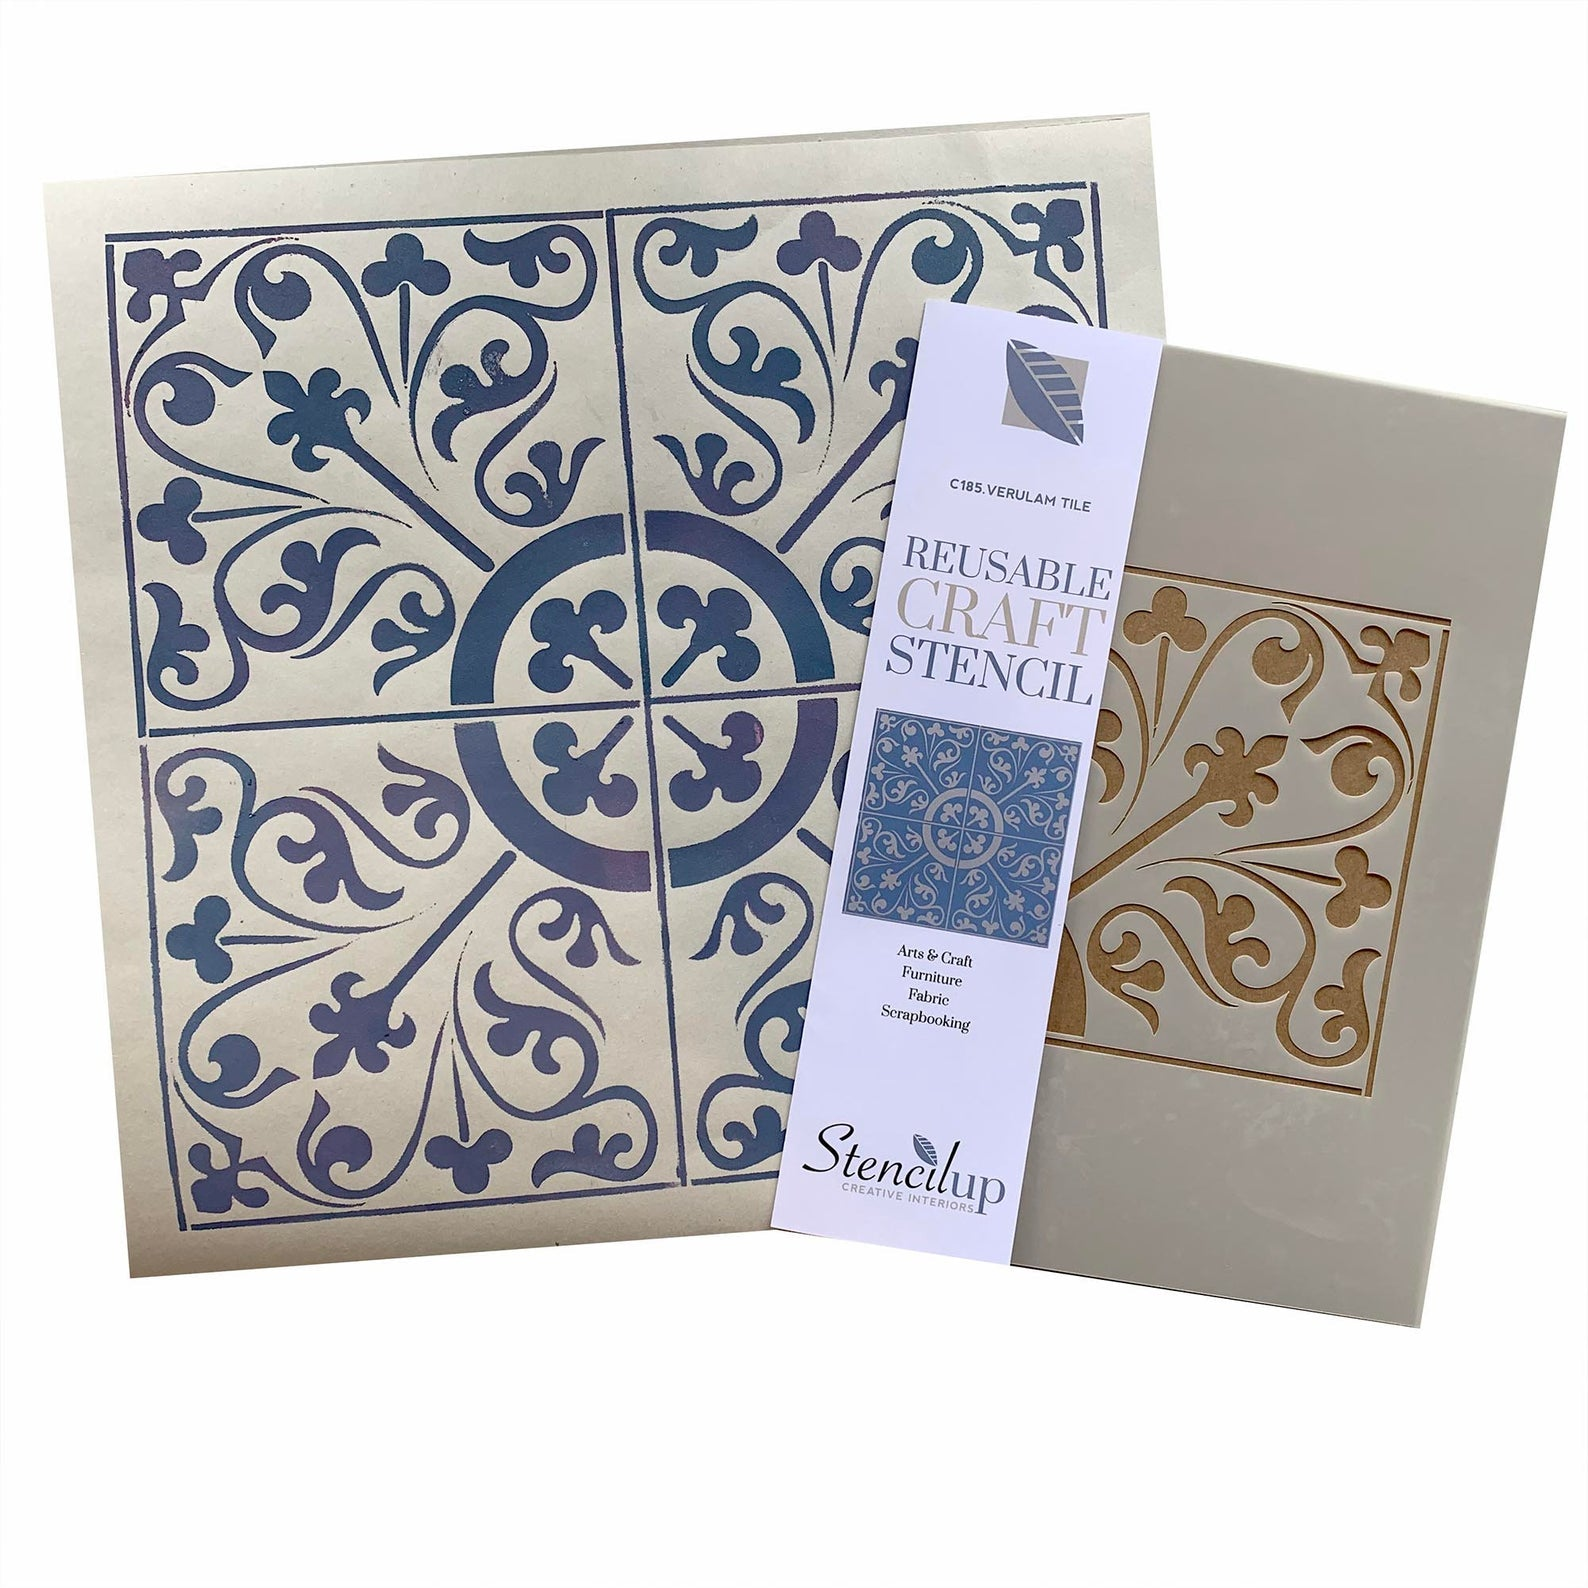 Verulam Tile Stencil for Walls and Floors